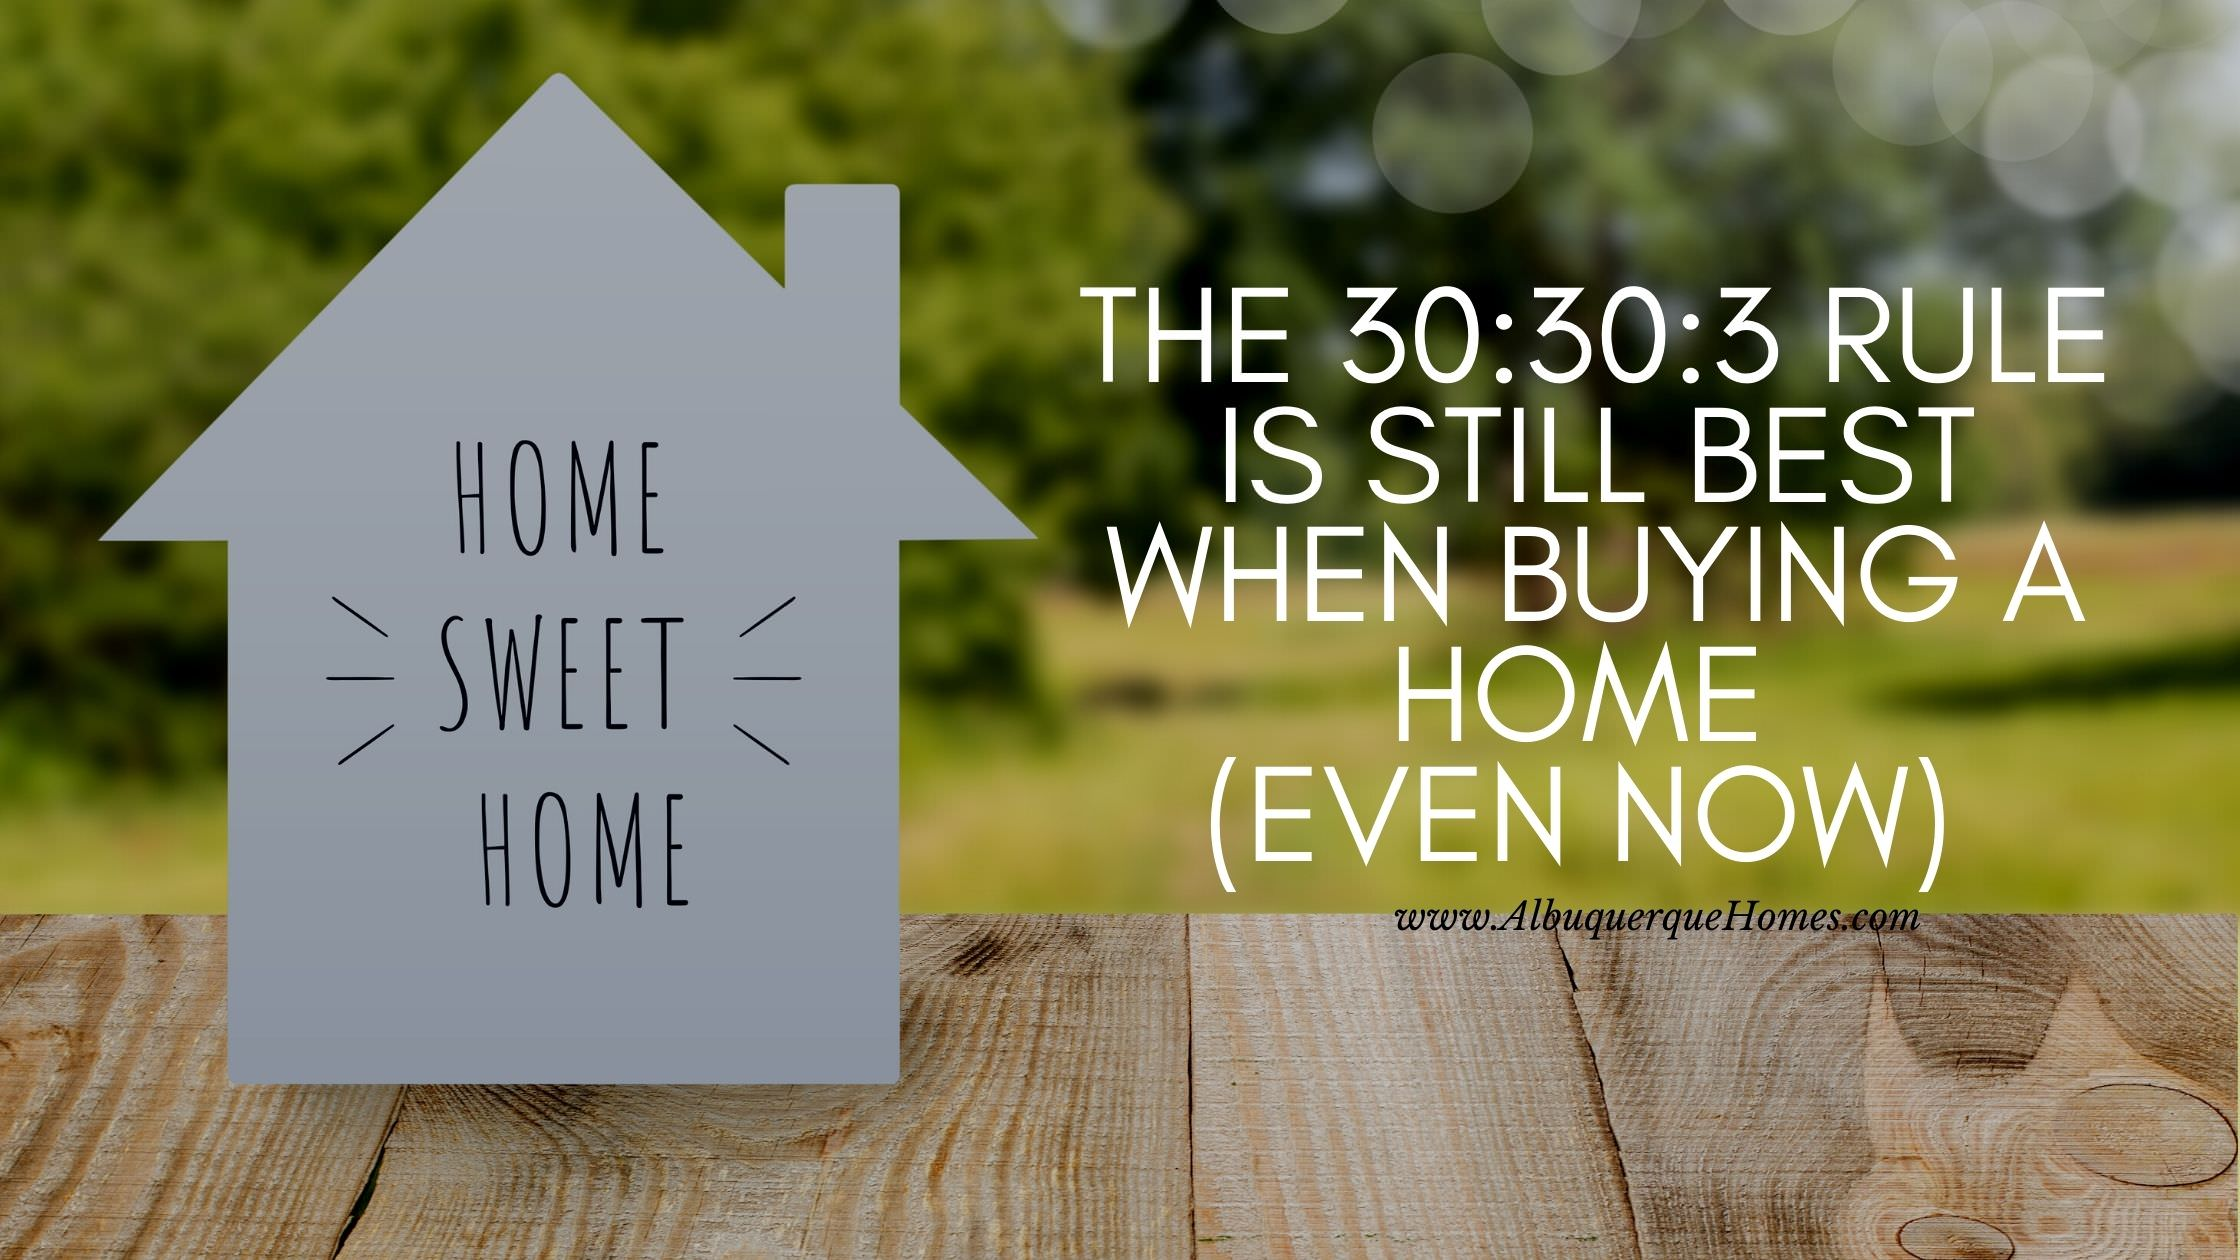 The 30:30:3 Rule is Still Best When Buying a Home (Even Now)